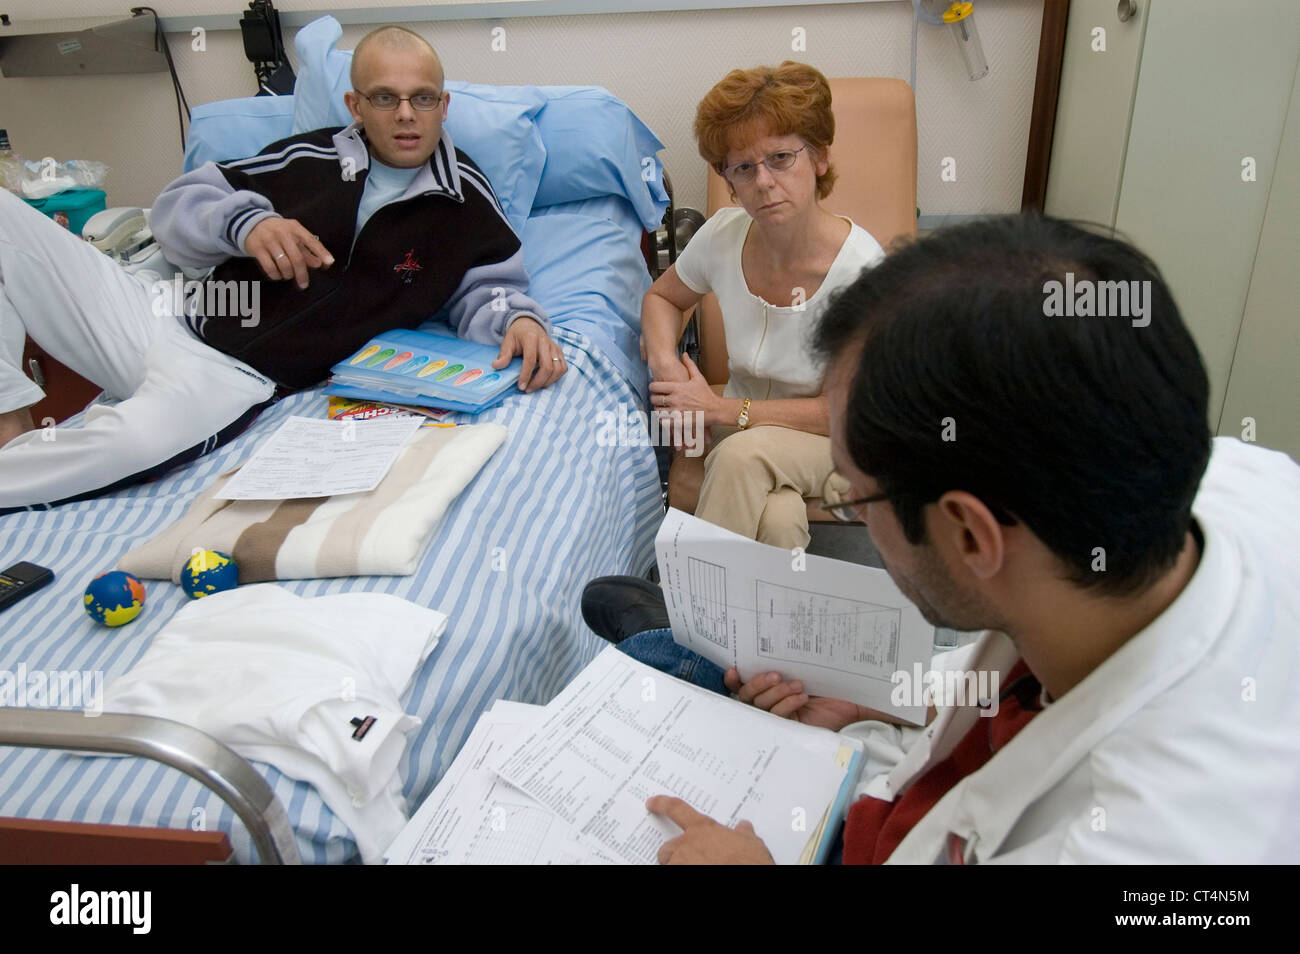 Old Person Hospital Bed Family Stock Photos & Old Person Hospital